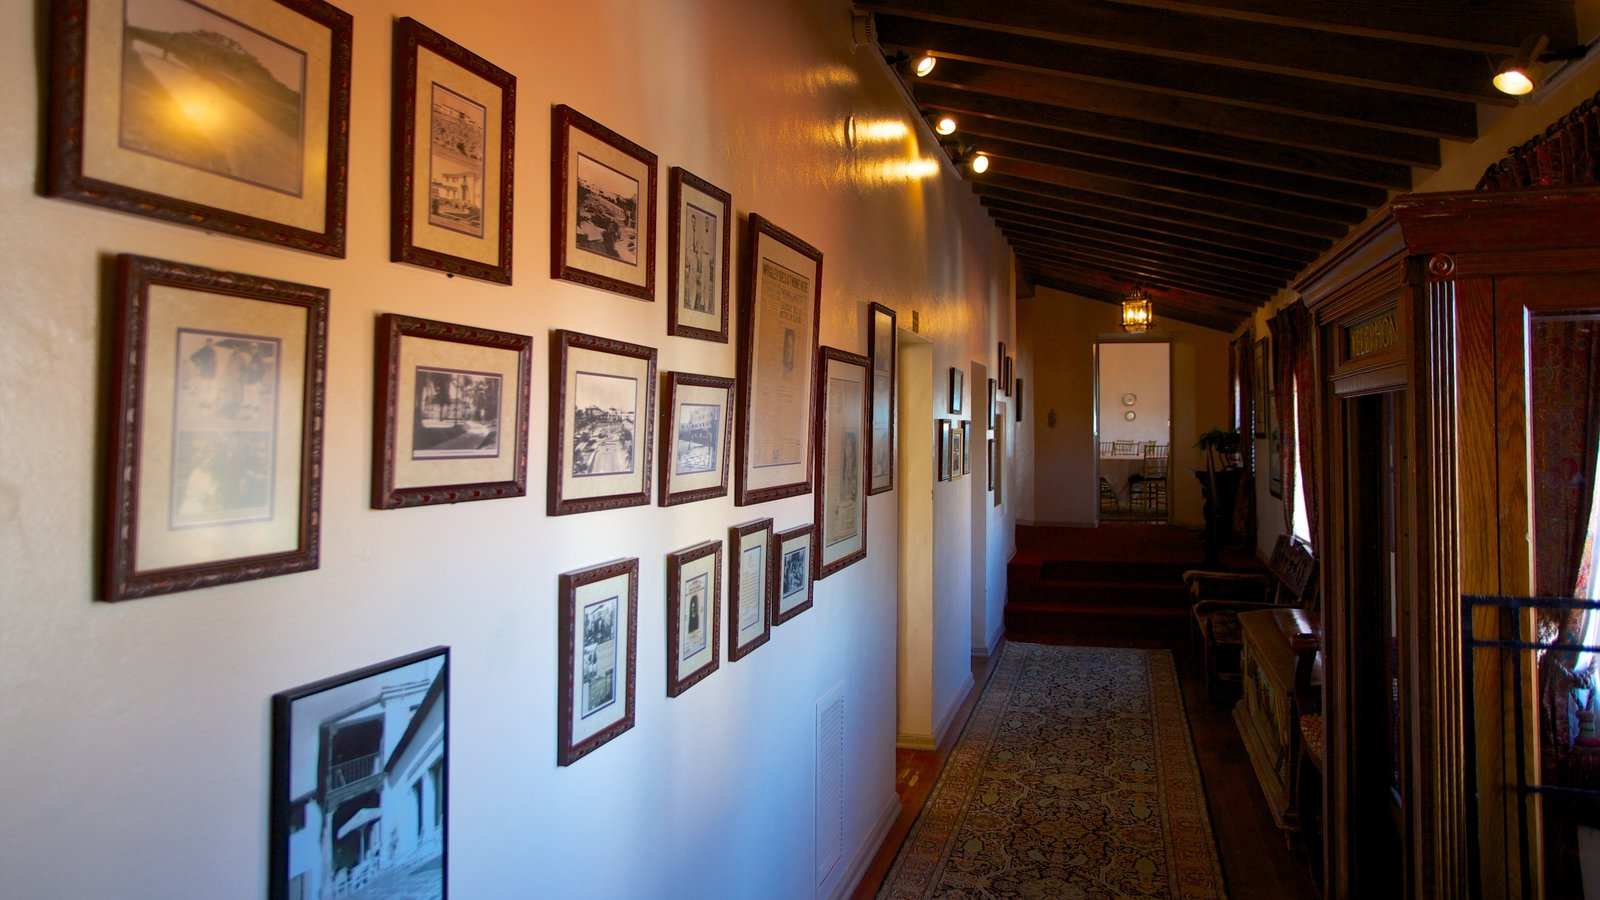 Wrigley Mansion showing art and interior views